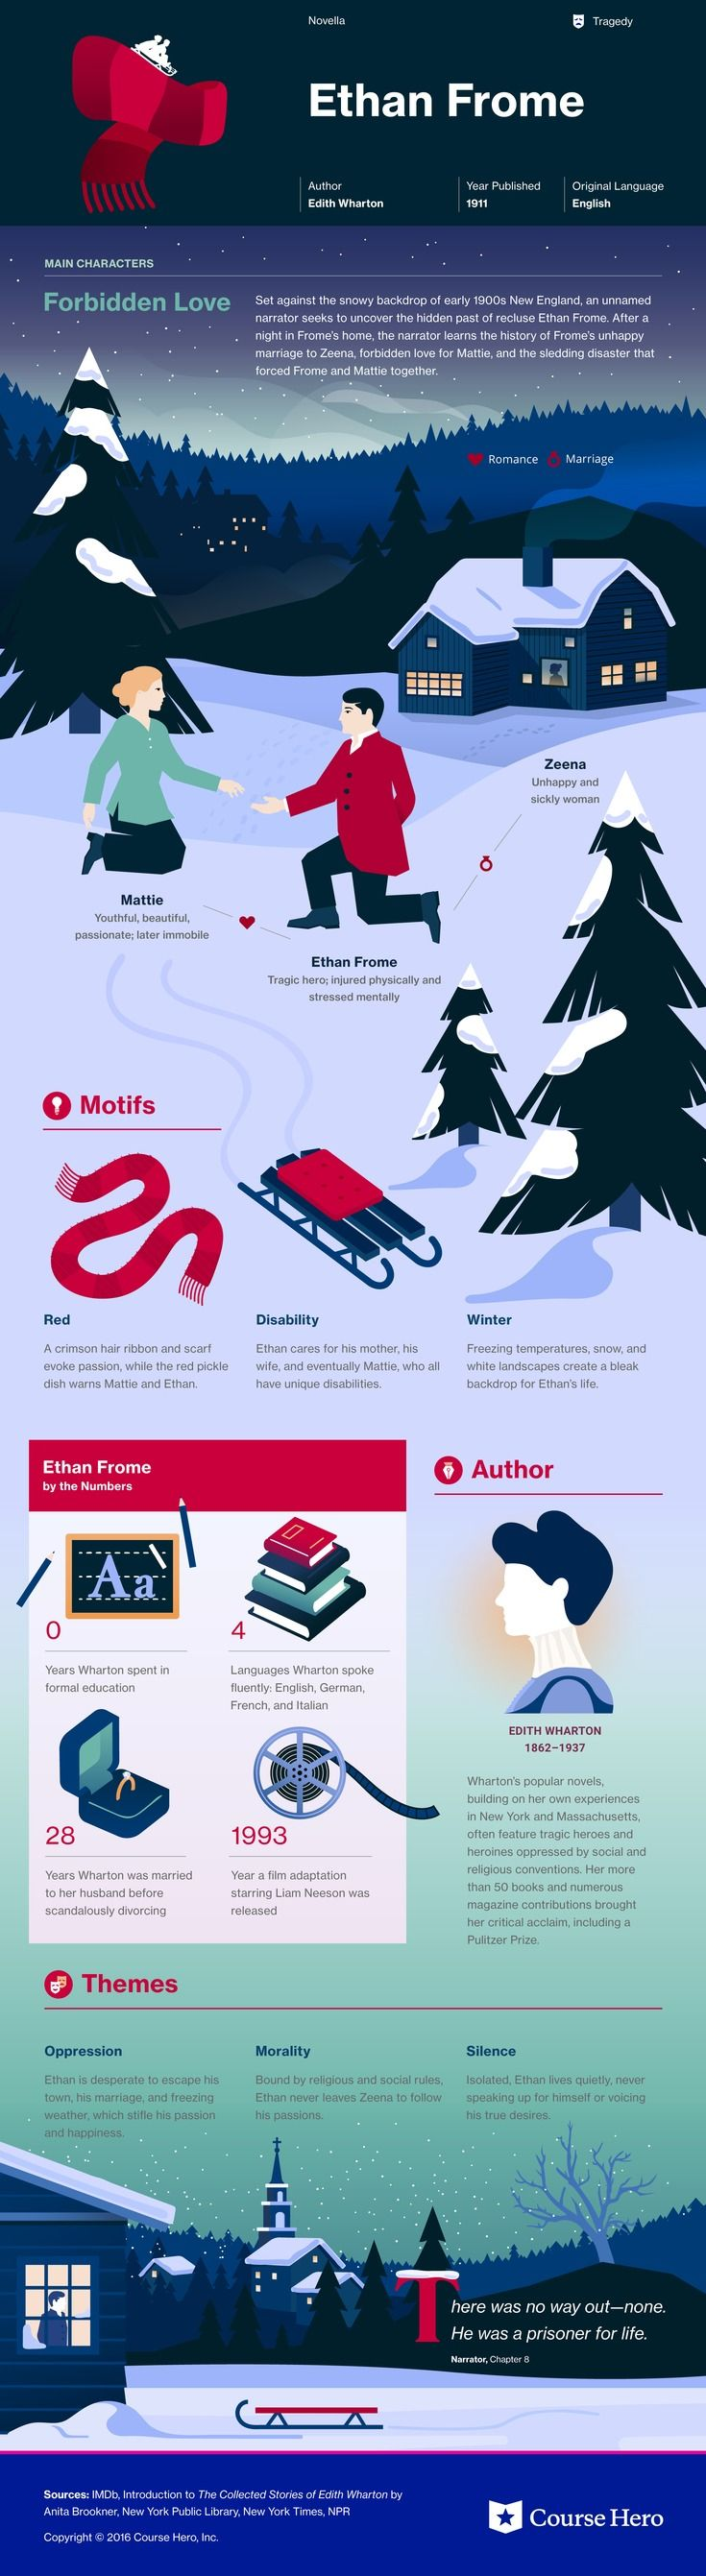 ethan frome symbols sjsibsenglish darkness light by meagan ethan  this coursehero infographic on ethan frome is both visually this coursehero infographic on ethan frome is